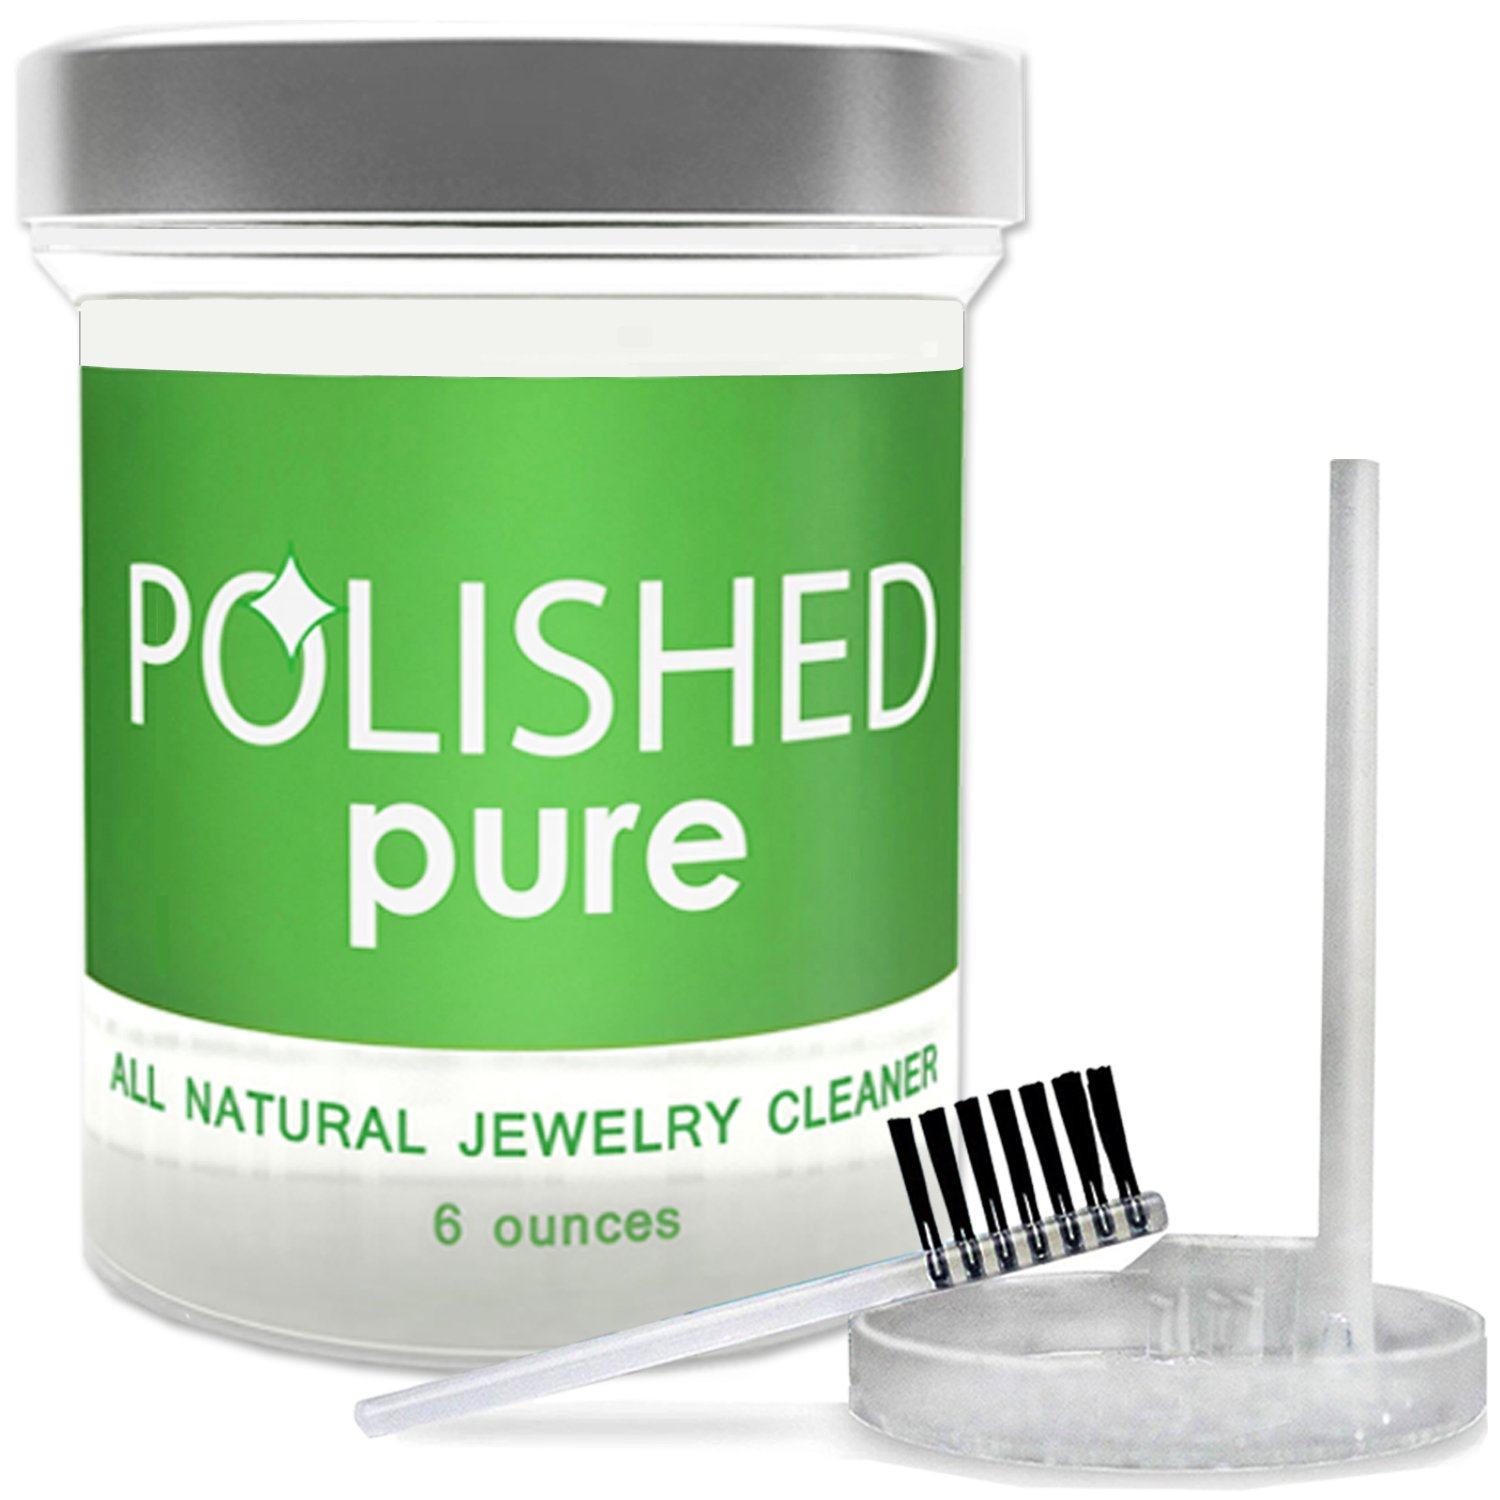 NEW Polished 100% All Natural Jewelry Cleaner Kit - Professional Clean in 2-Minutes! Diamond Ring Cleaner, Gold, Platinum | Safe on Skin, Made in USA, Jewelry Cleaning Solution + Polishing Cloth by Polished (Image #2)